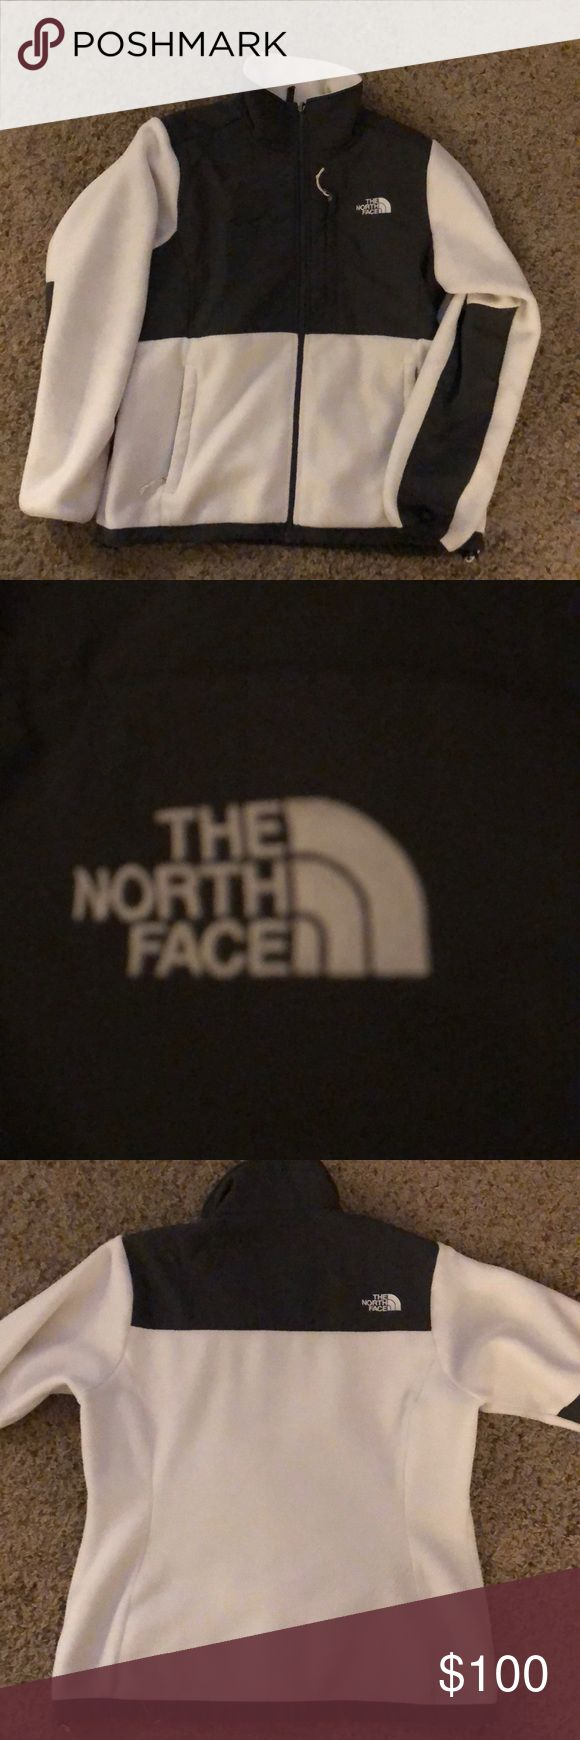 The North Face Denali Jacket The North Face Denali Ladies Jacket Size: Large Color: White & Grey Has been worn and washed, one small flaw on sleeve (see photo compared to a penny to show size) The North Face Jackets & Coats